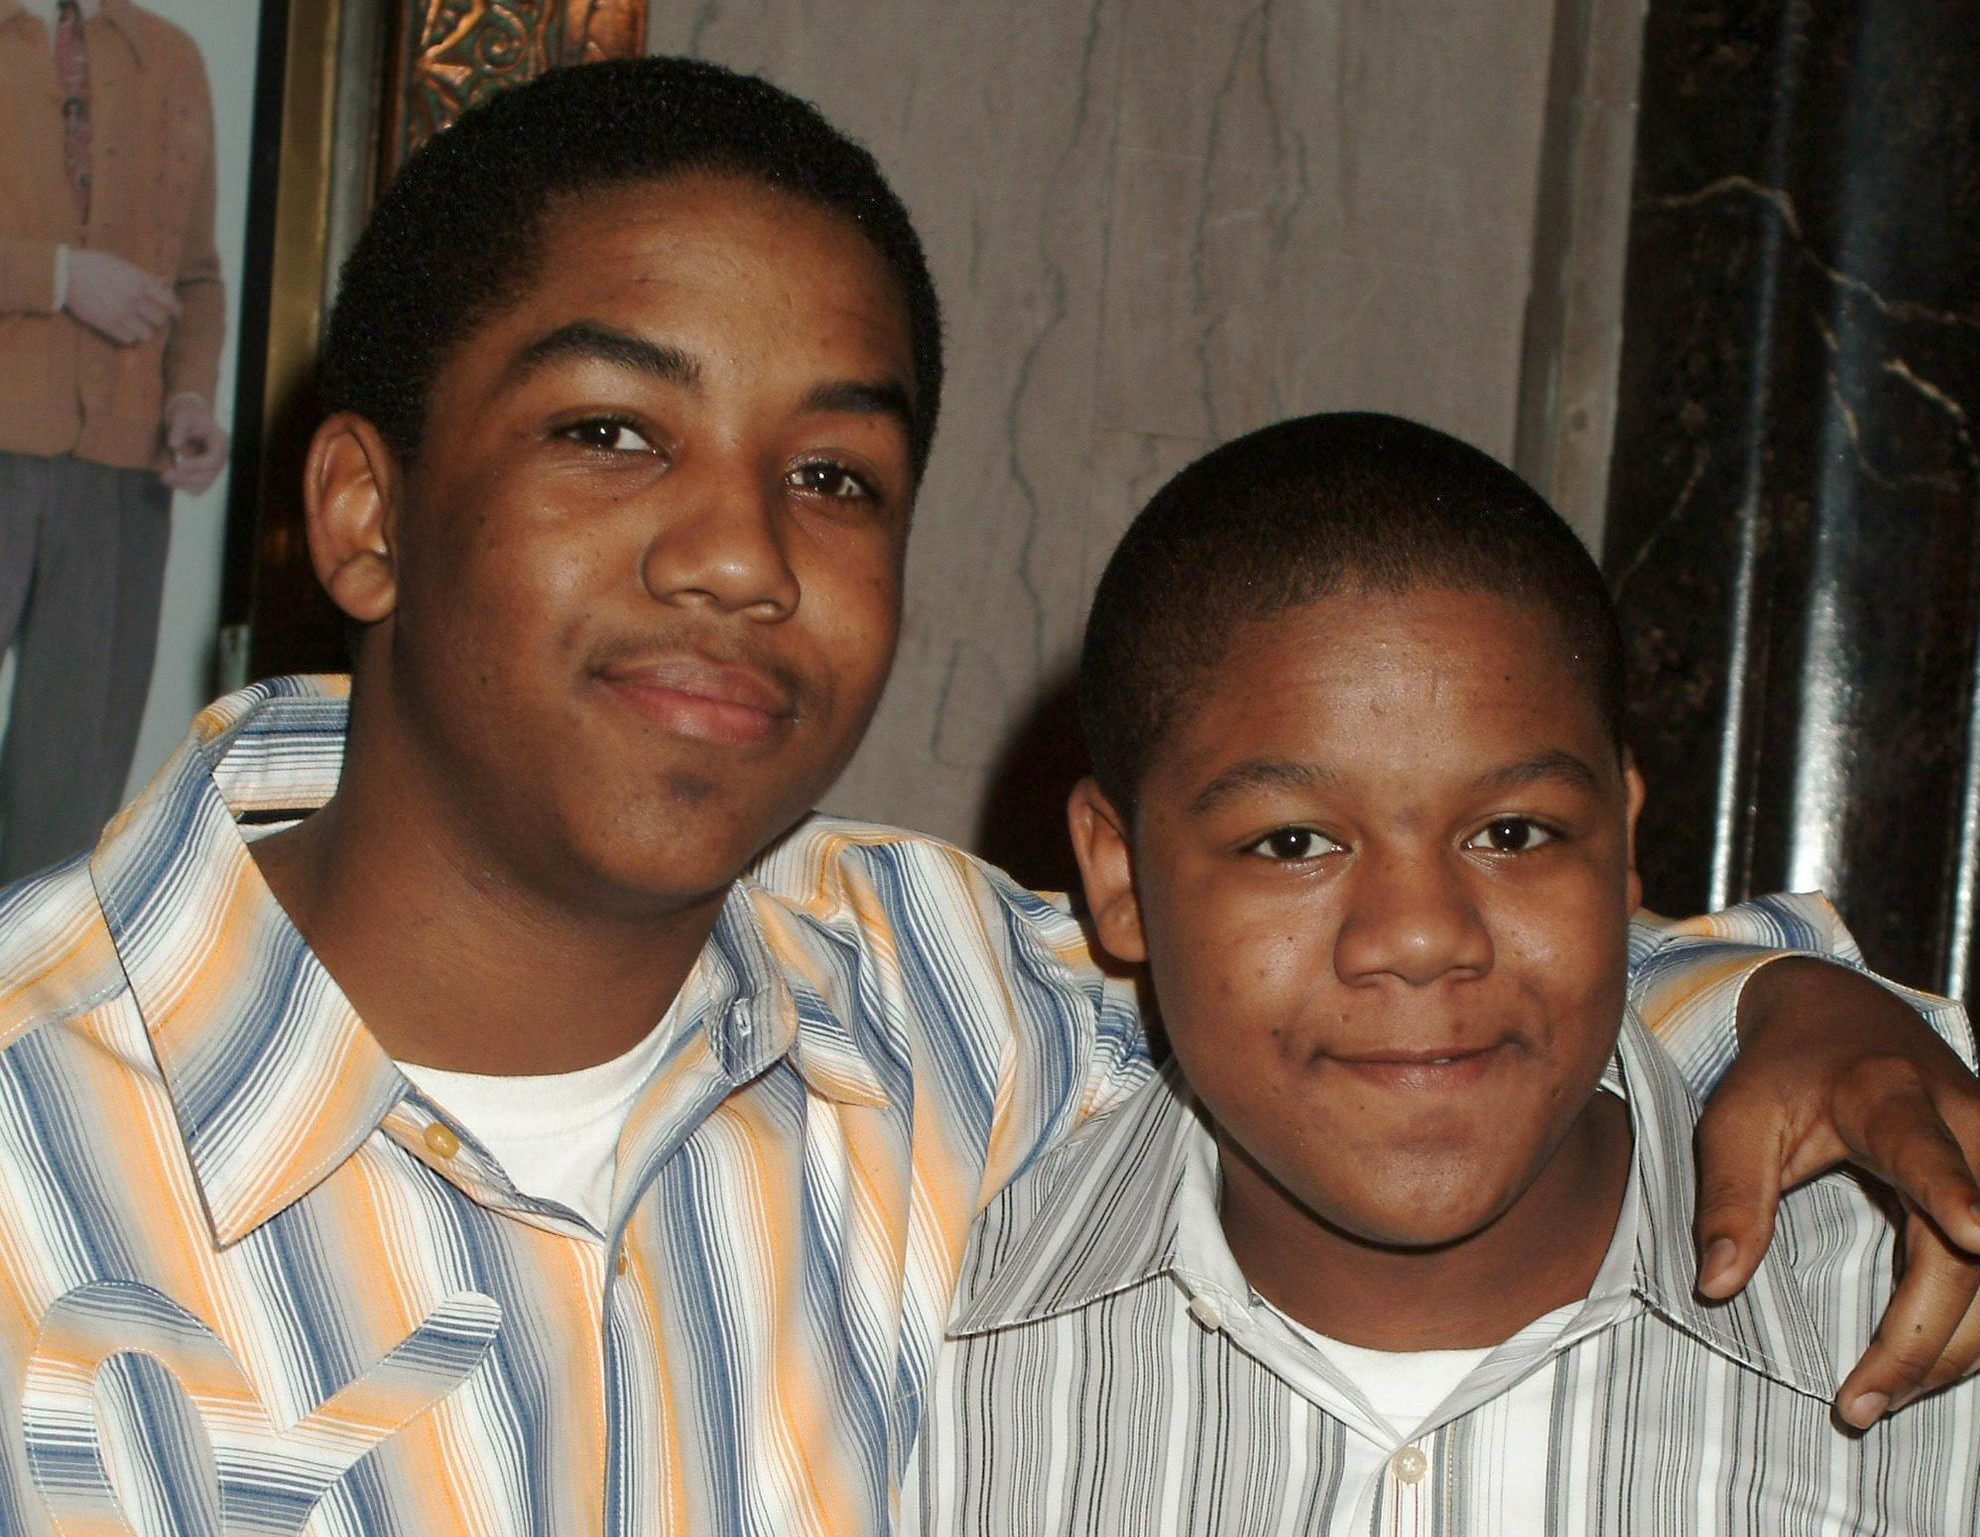 Former Disney Star Kyle Massey Charged With Immoral Communication With Teen